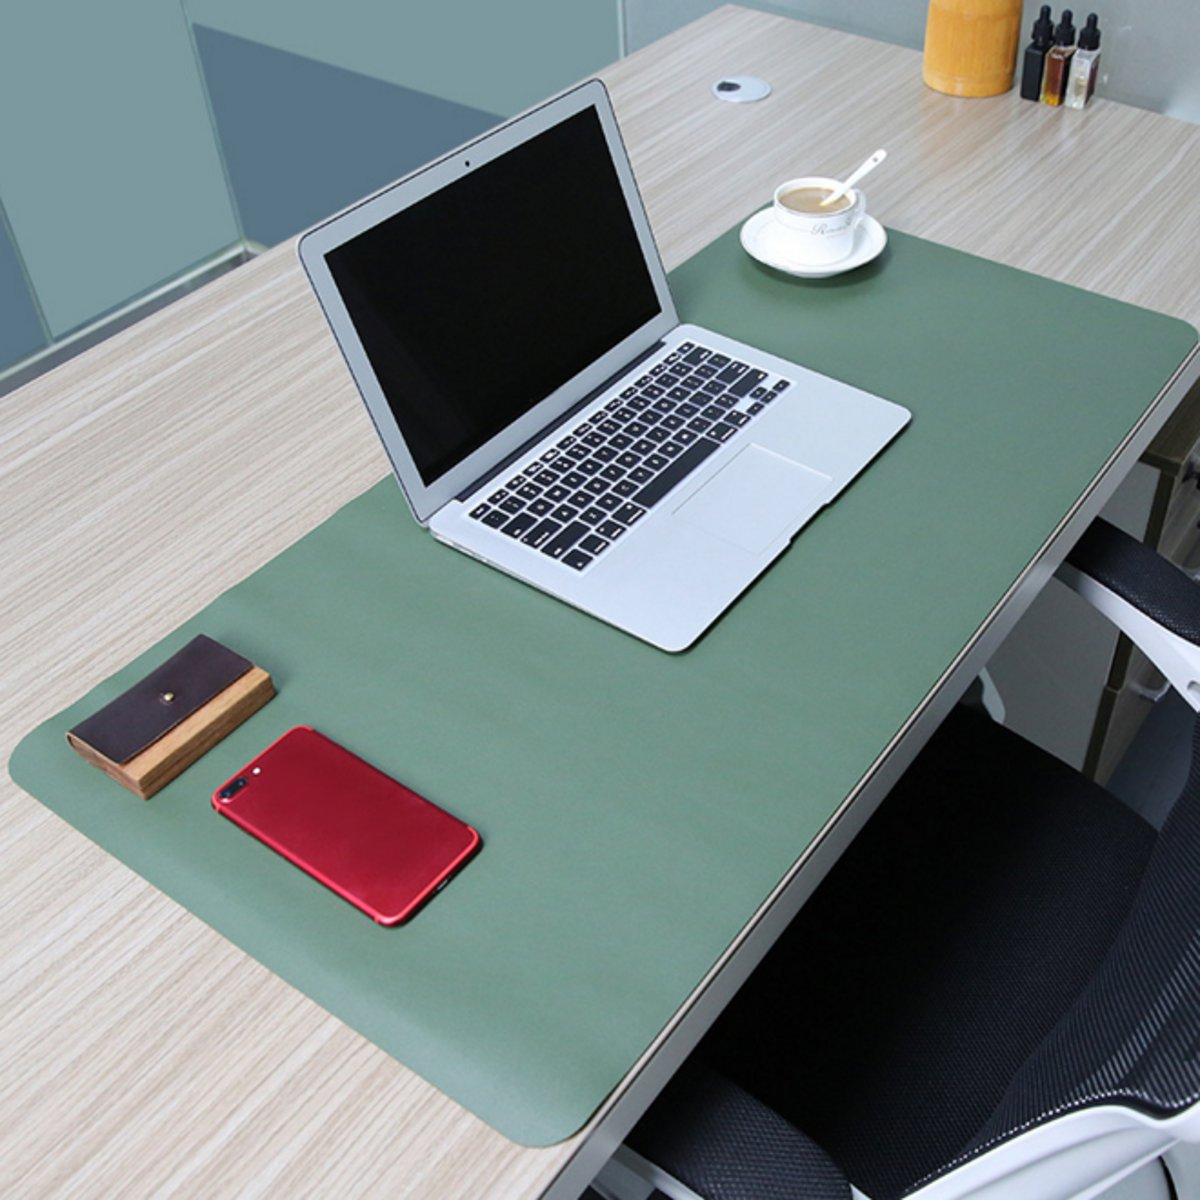 Meigar 90x45cm Both Sides Extended PU Leather Mouse Pad Office Computer Gaming Desk Mat